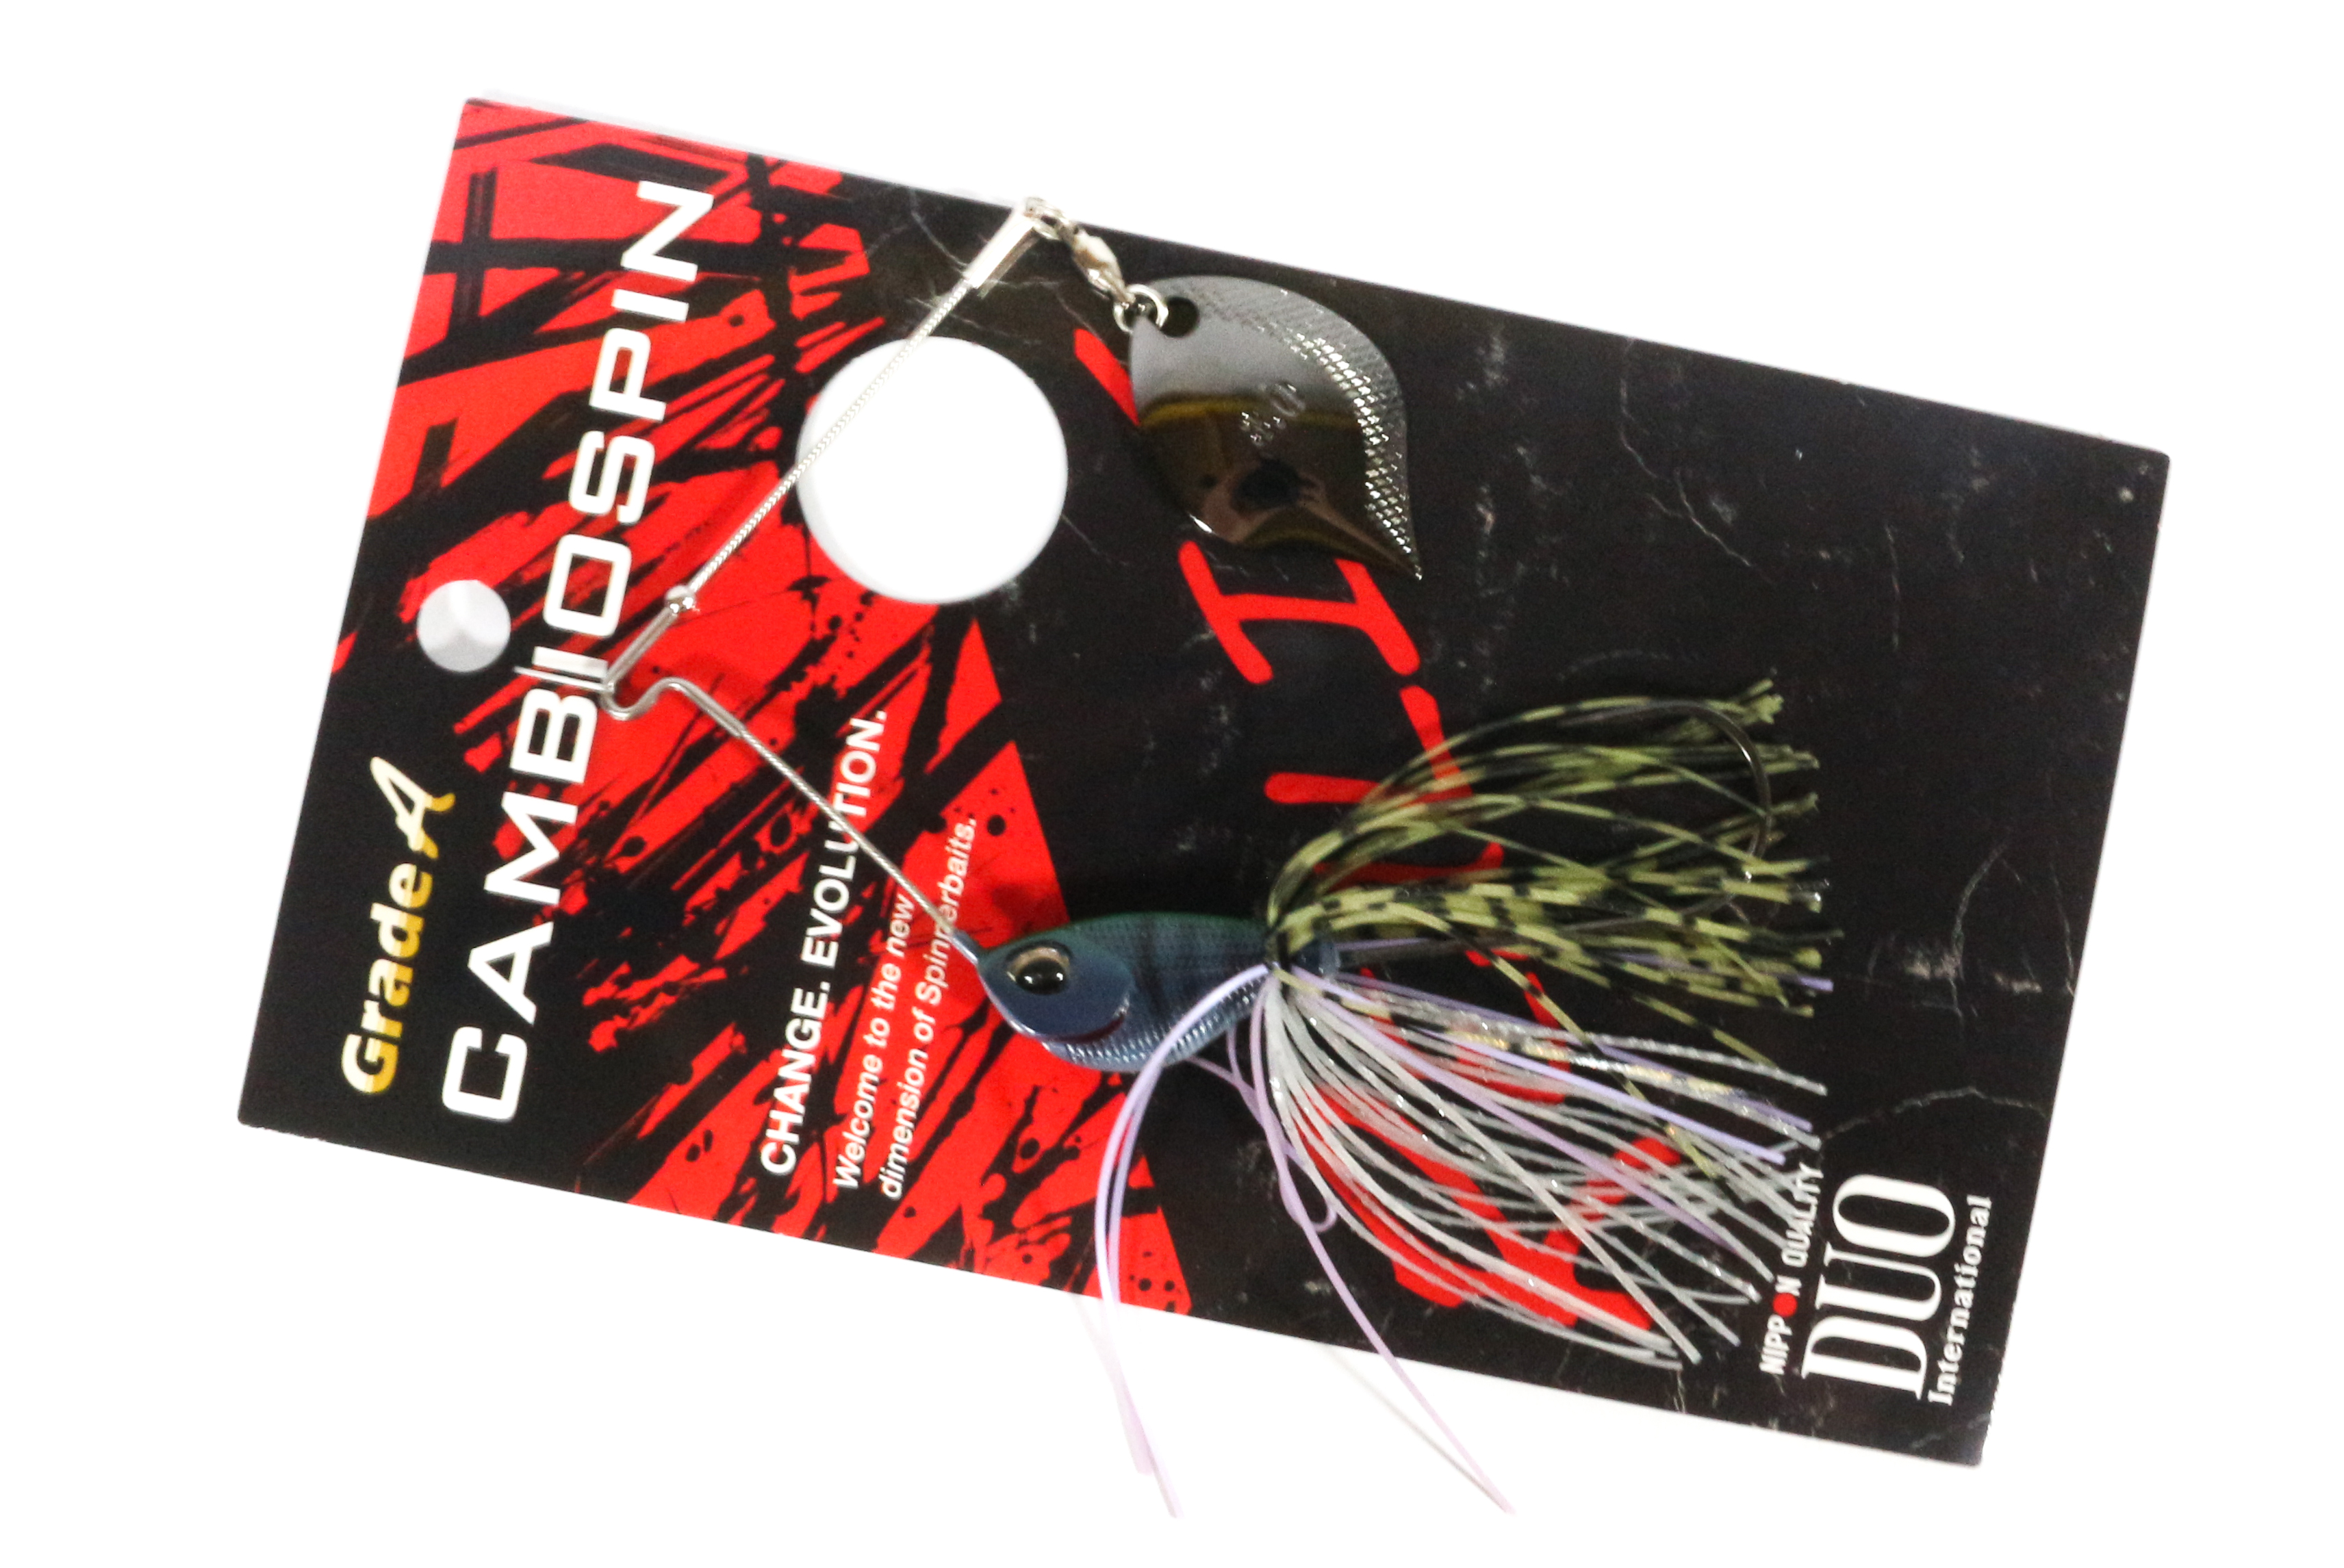 Sale Duo Realis Cambio Spin Spinnerbait Single Blade 3/8 oz J010 (4210)